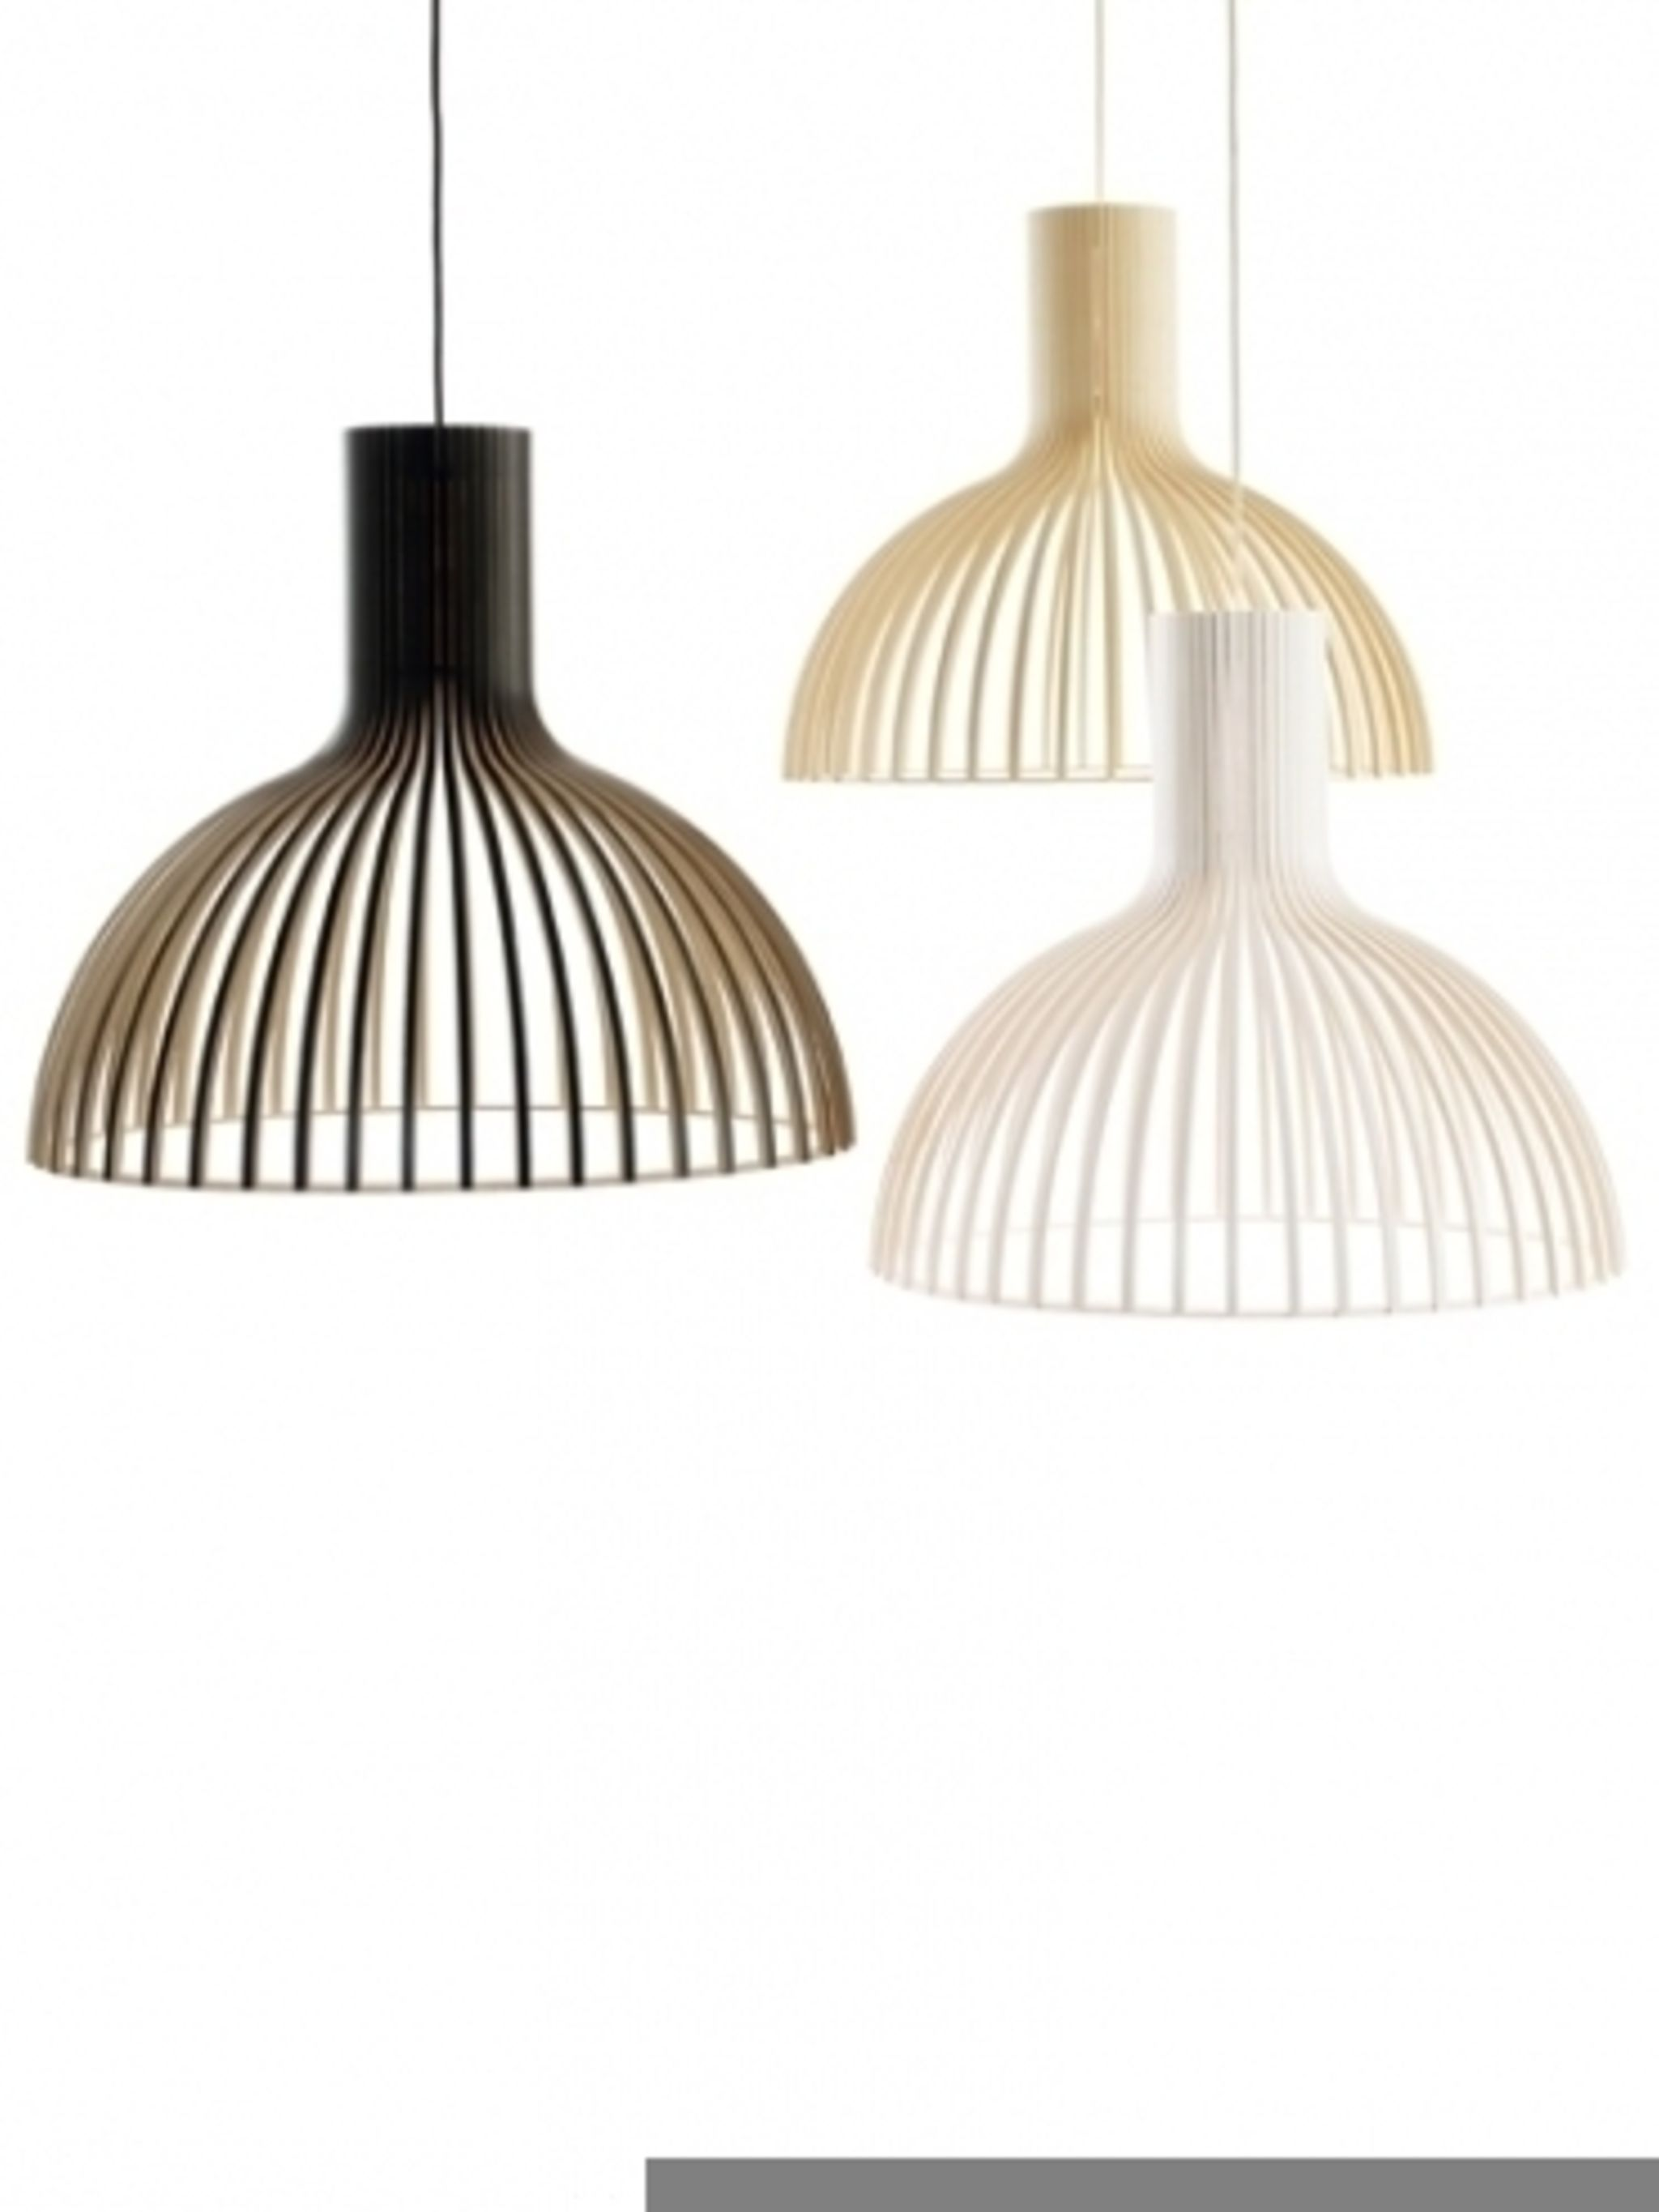 lampen amersfoort gallery of regolit staande lamp boog with lampen amersfoort great een winkel. Black Bedroom Furniture Sets. Home Design Ideas